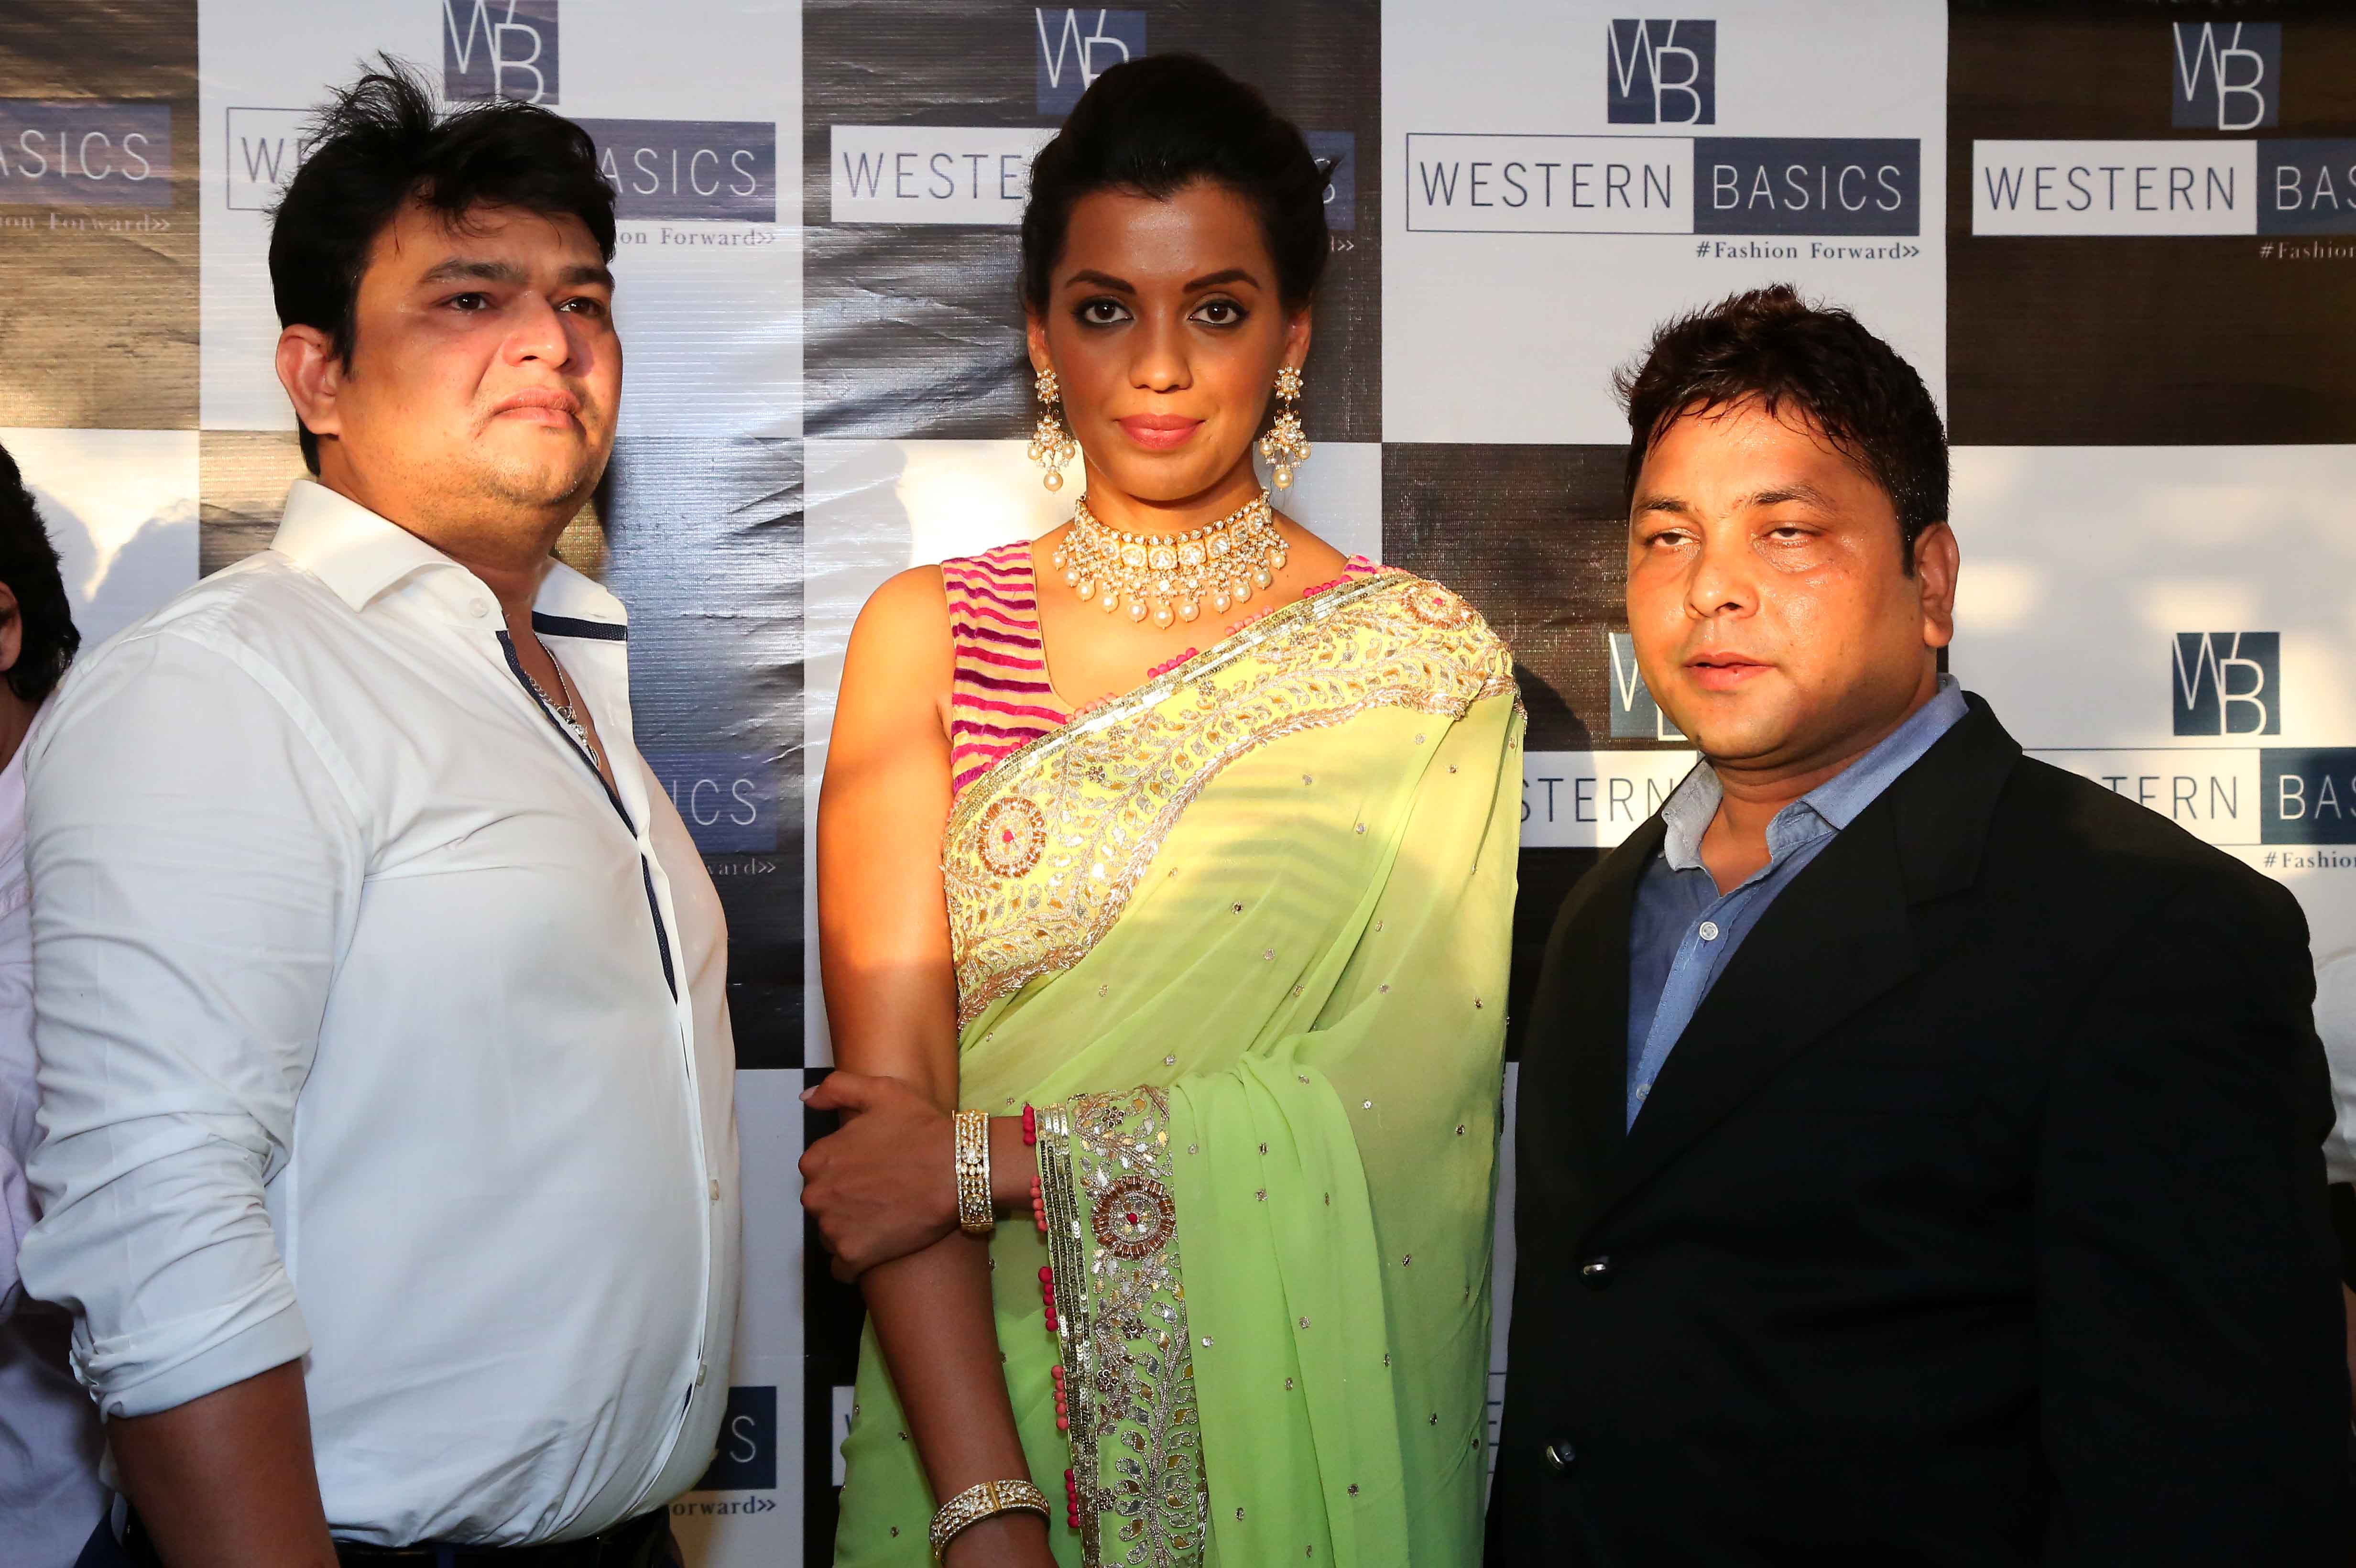 Mr.-Sudhir-Kumar-Gupta-Mugdha-Godse-Sunil-Singh-graced-the-inauguration-of-Western-Basics-Kids-Fashion-Wear-Store.-3